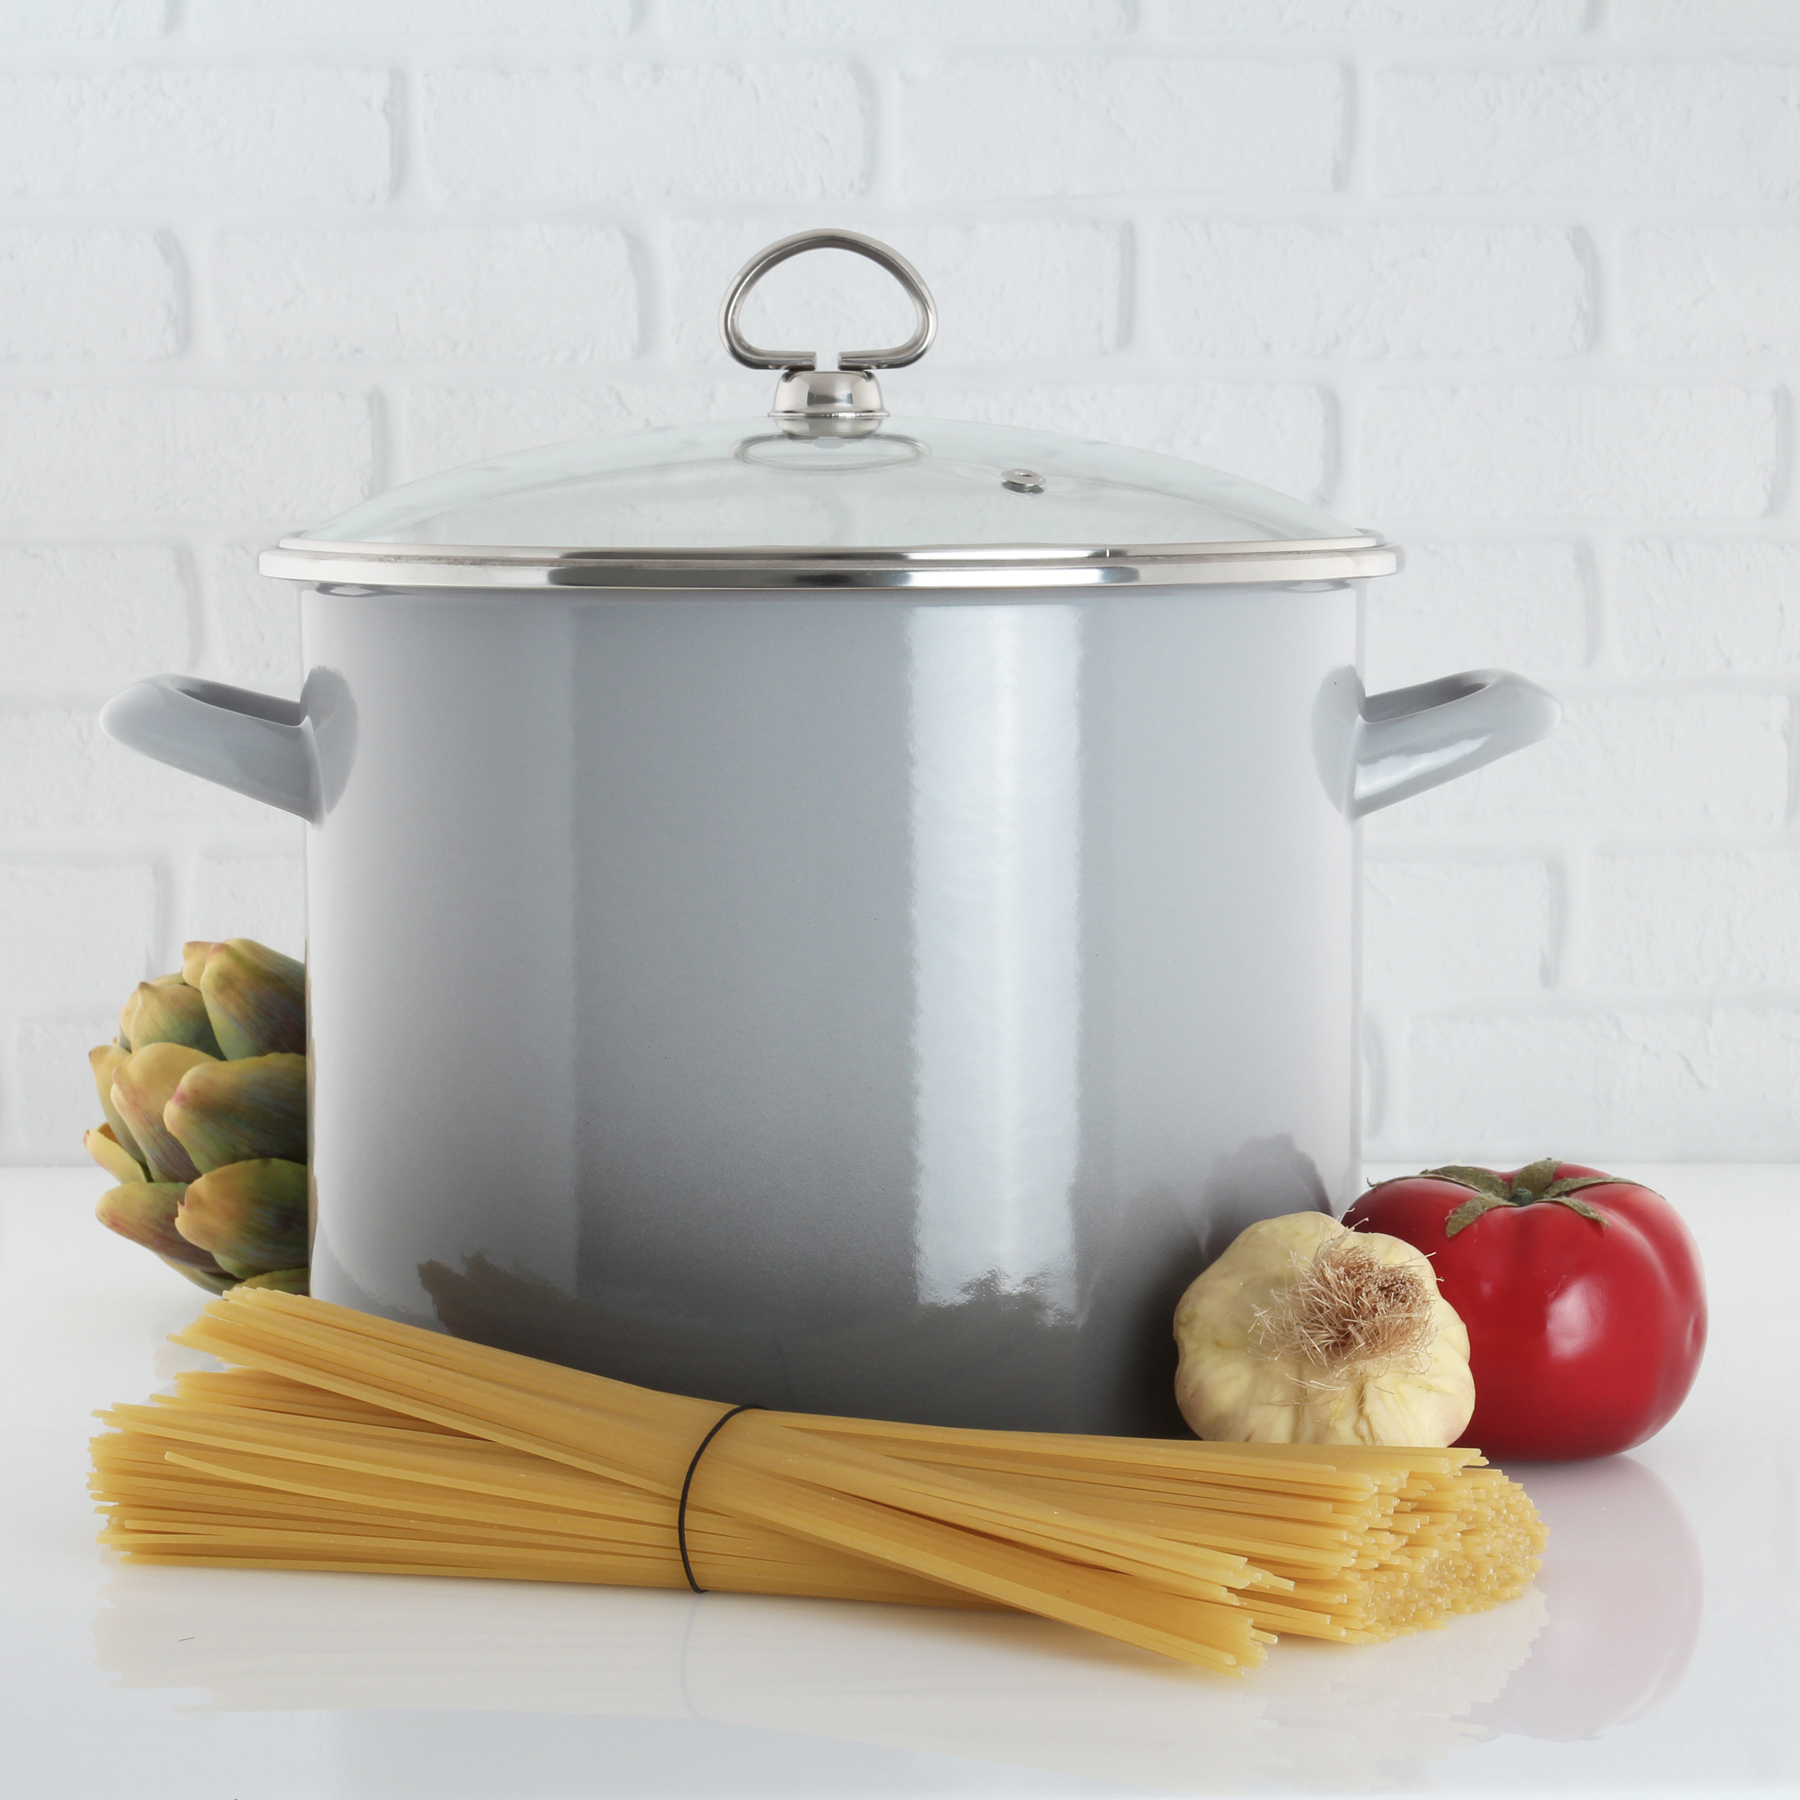 enamel on steel 8 quart stockpot healthiest cooking surface available inert color exterior will never fade lifetime warranty in action